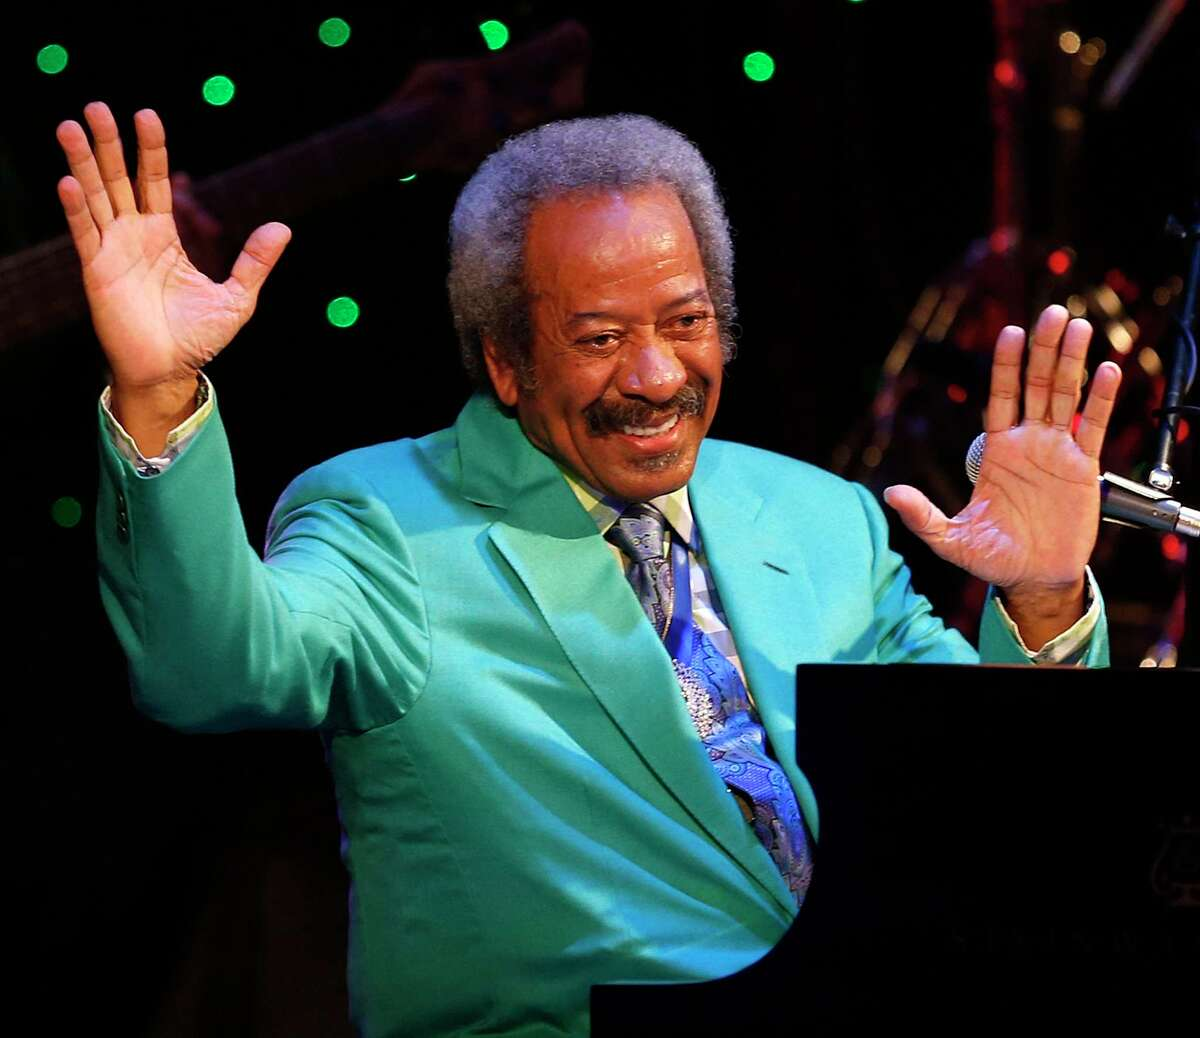 In this Tuesday April 30, 2013, photo, Allen Toussaint thanks the audience after a benefit concert/tribute in his honor at Harrah's New Orleans Theatre, in New Orleans. Legendary New Orleans musician and composer Toussaint died Monday, Nov. 9, 2015, after suffering a heart attack following a concert he performed in Madrid. He was 77.